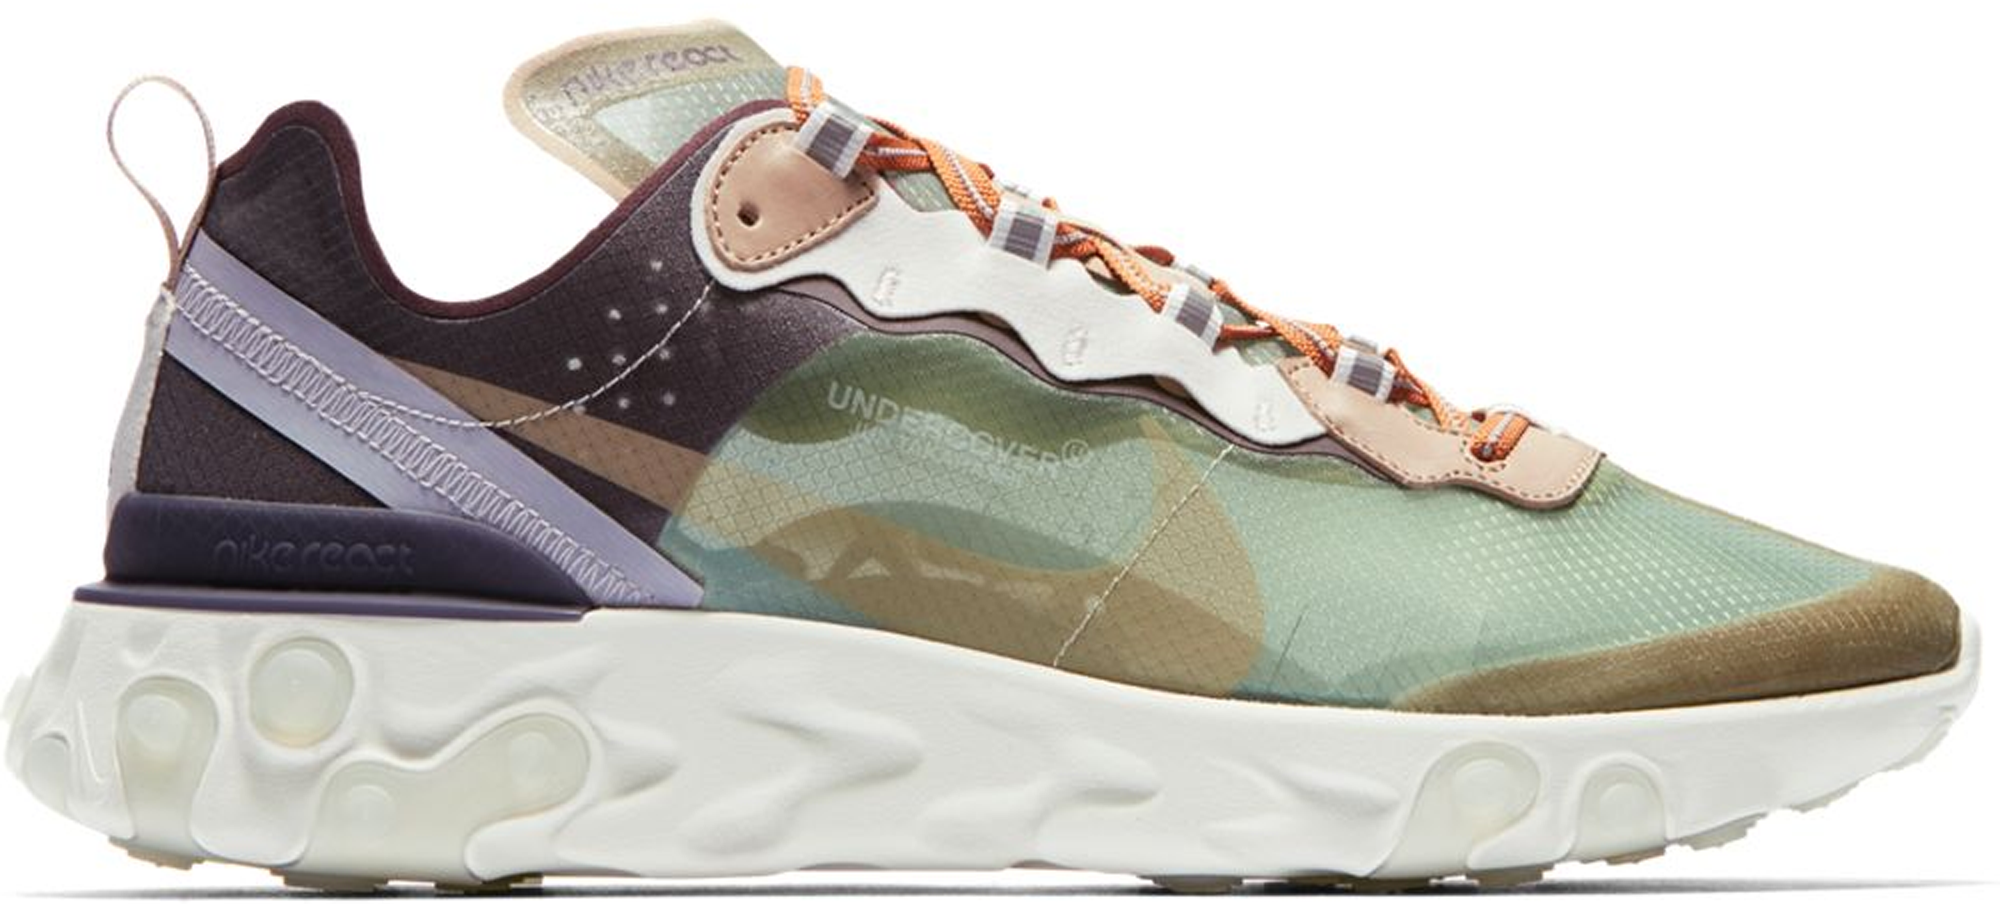 Nike React Element 87 Undercover Green